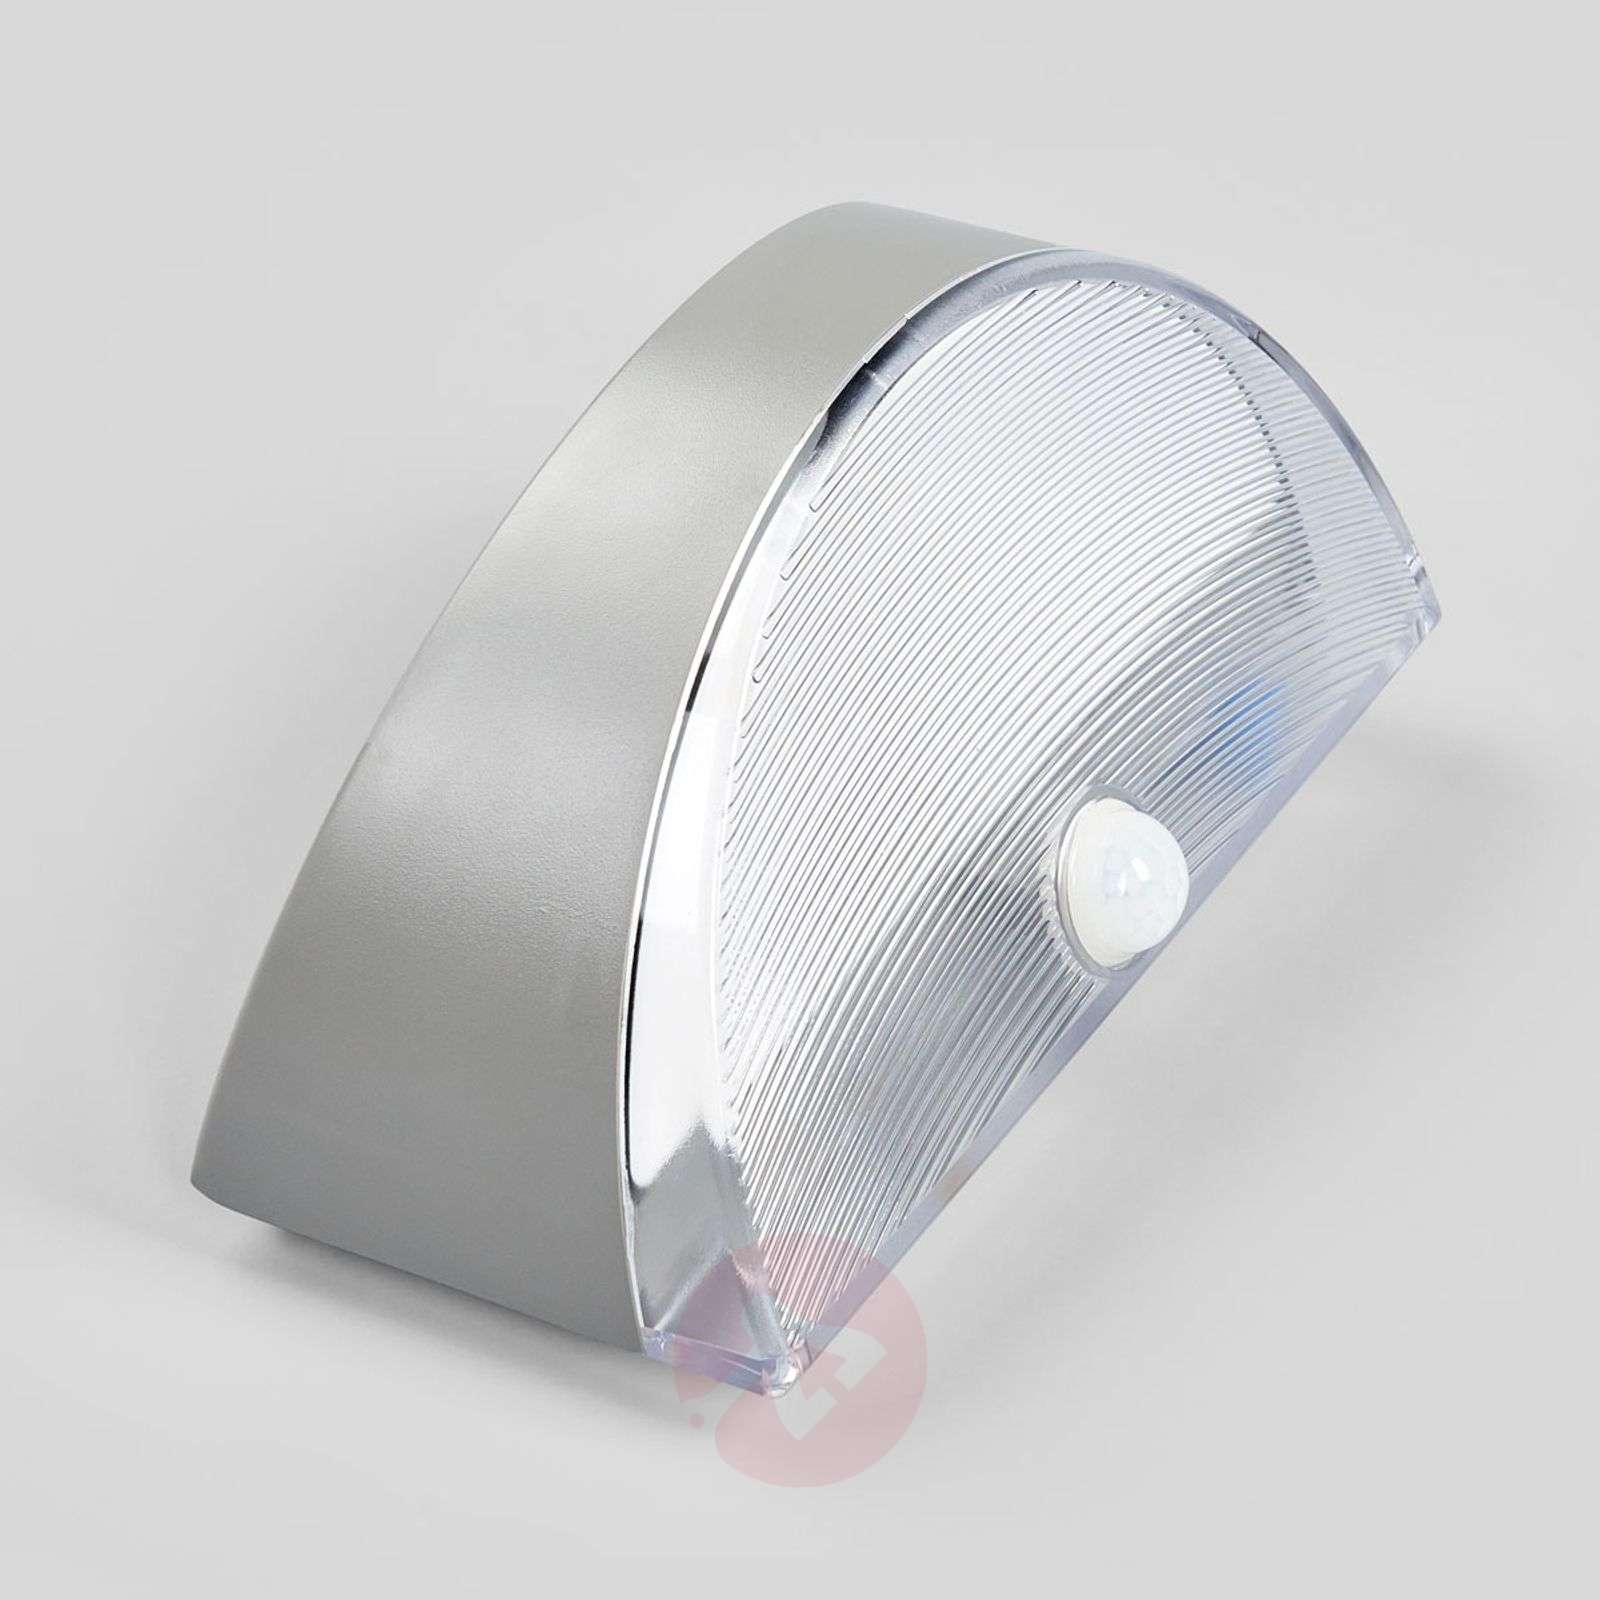 Bread solar exterior wall light with LED-3006321-03